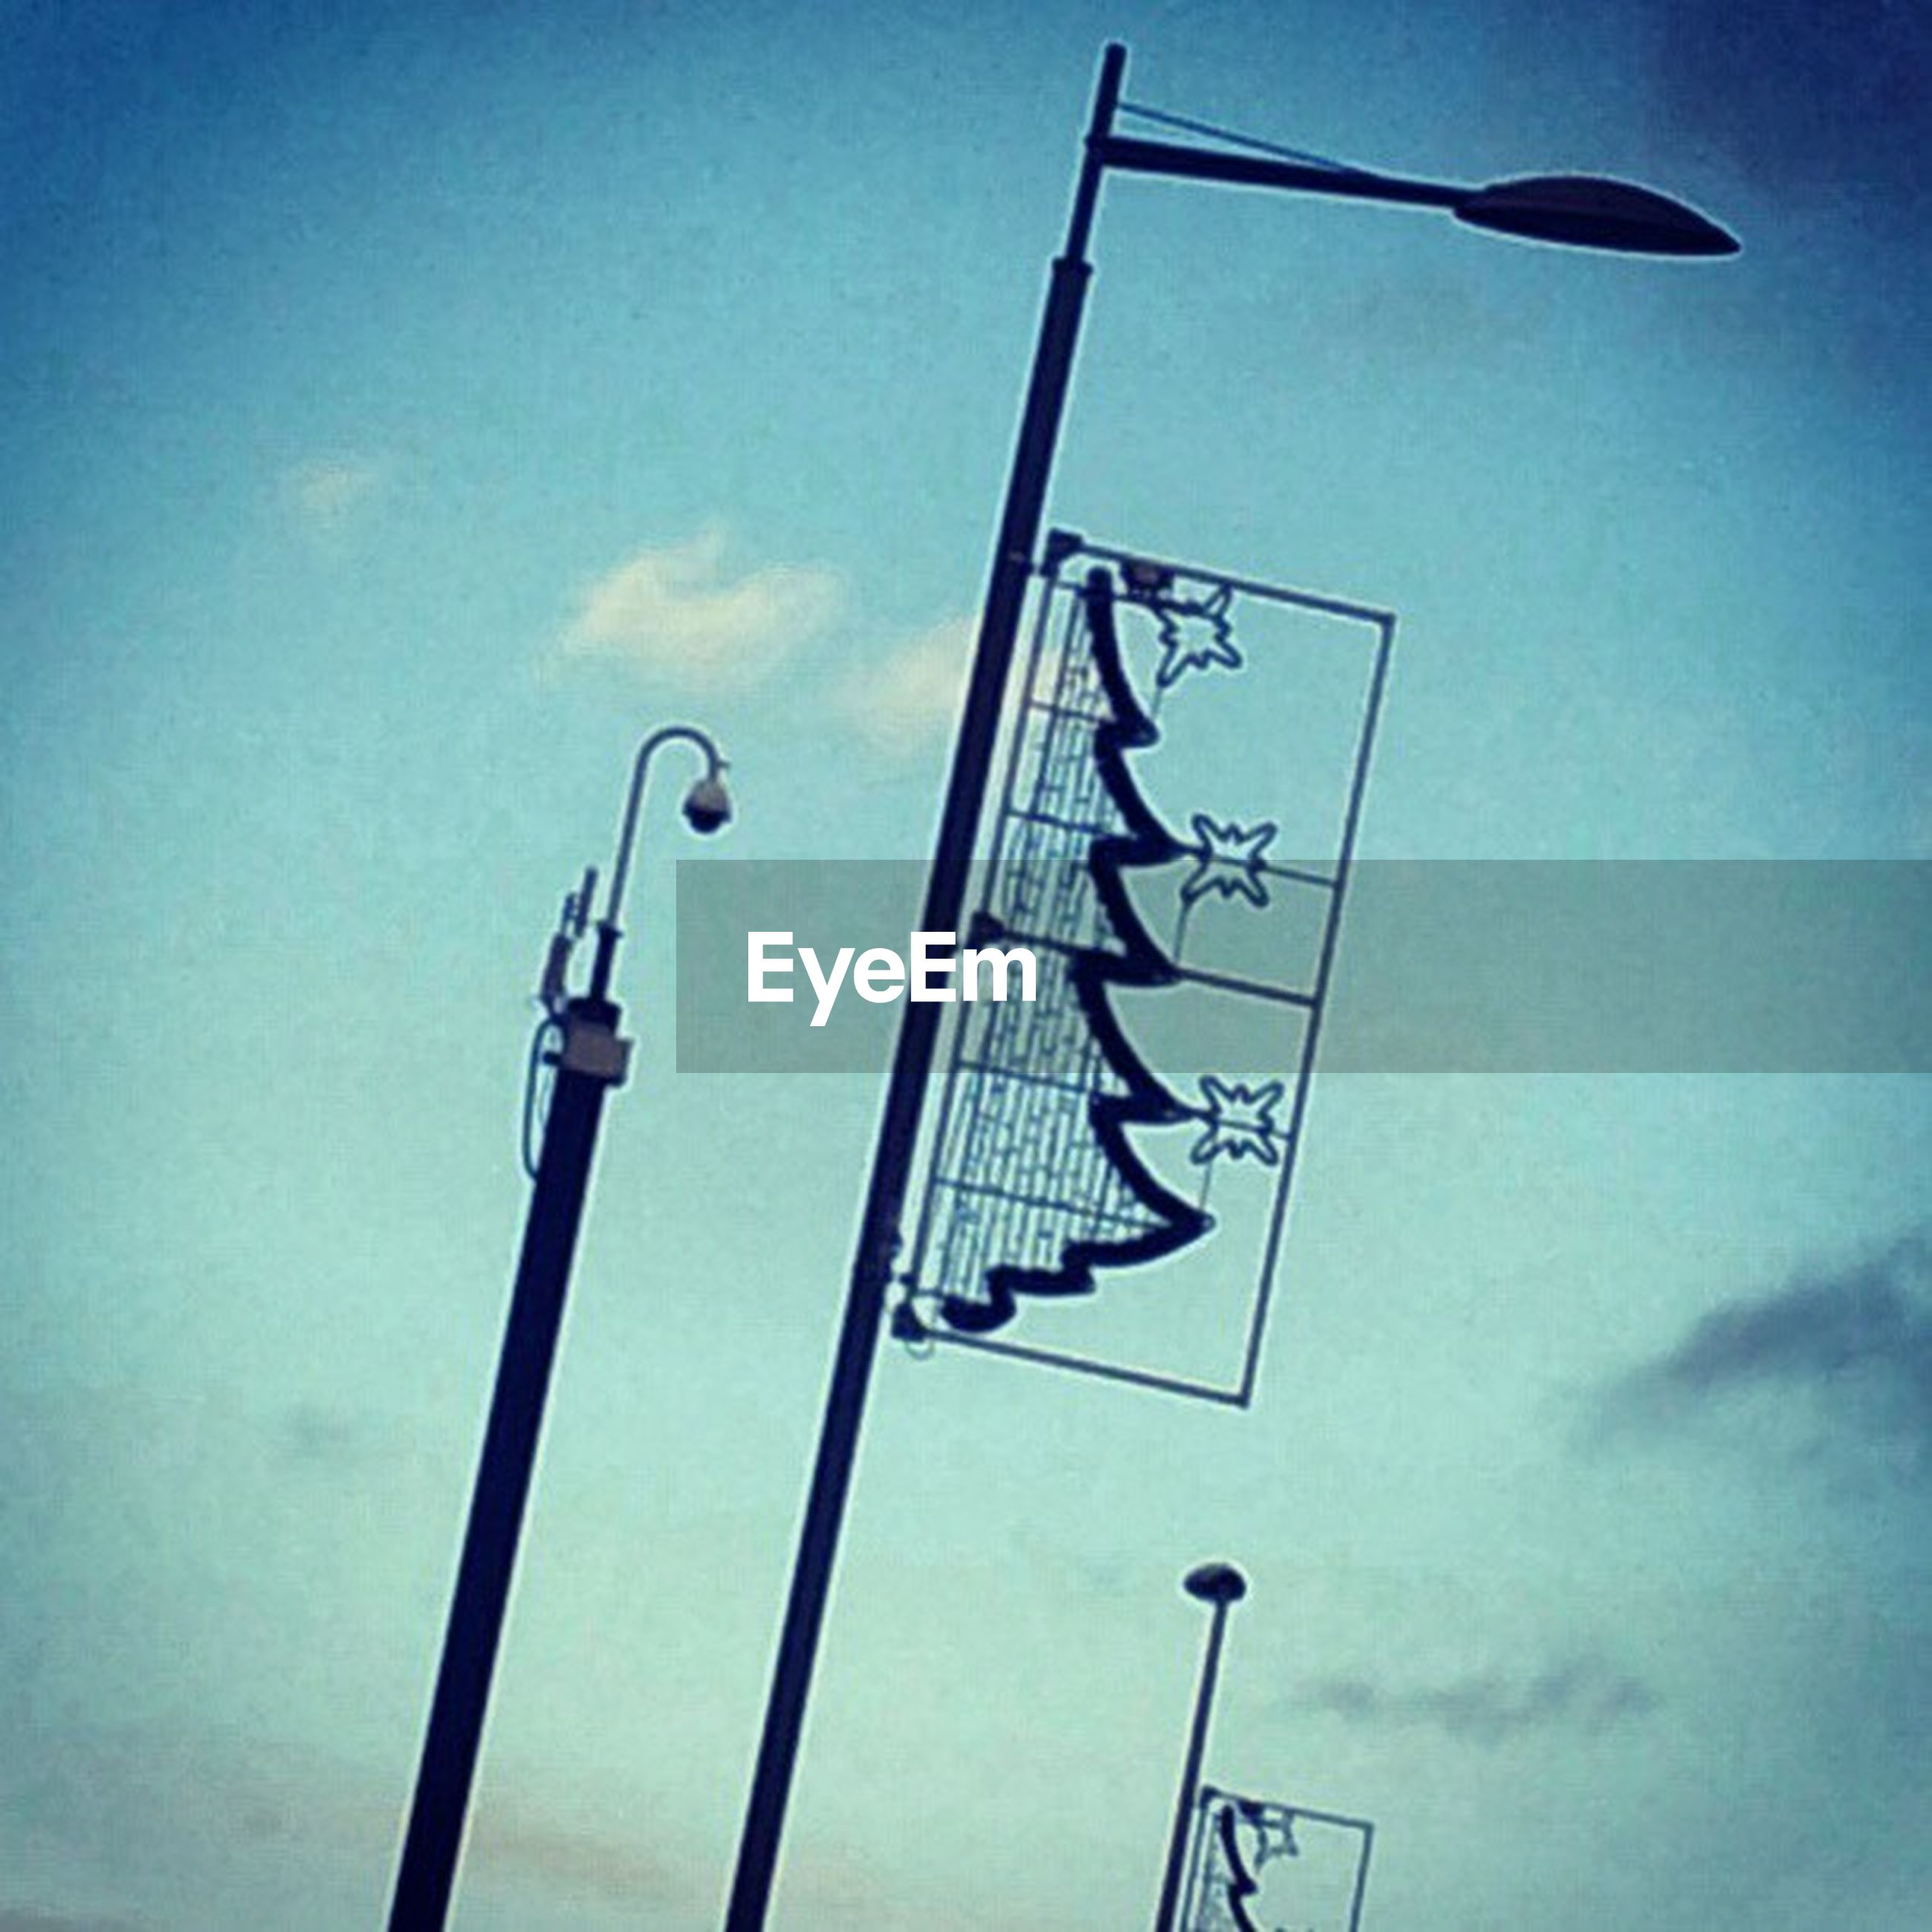 low angle view, sky, blue, street light, pole, lighting equipment, cloud - sky, cloud, no people, day, flag, outdoors, clear sky, hanging, metal, floodlight, sunlight, in a row, identity, communication